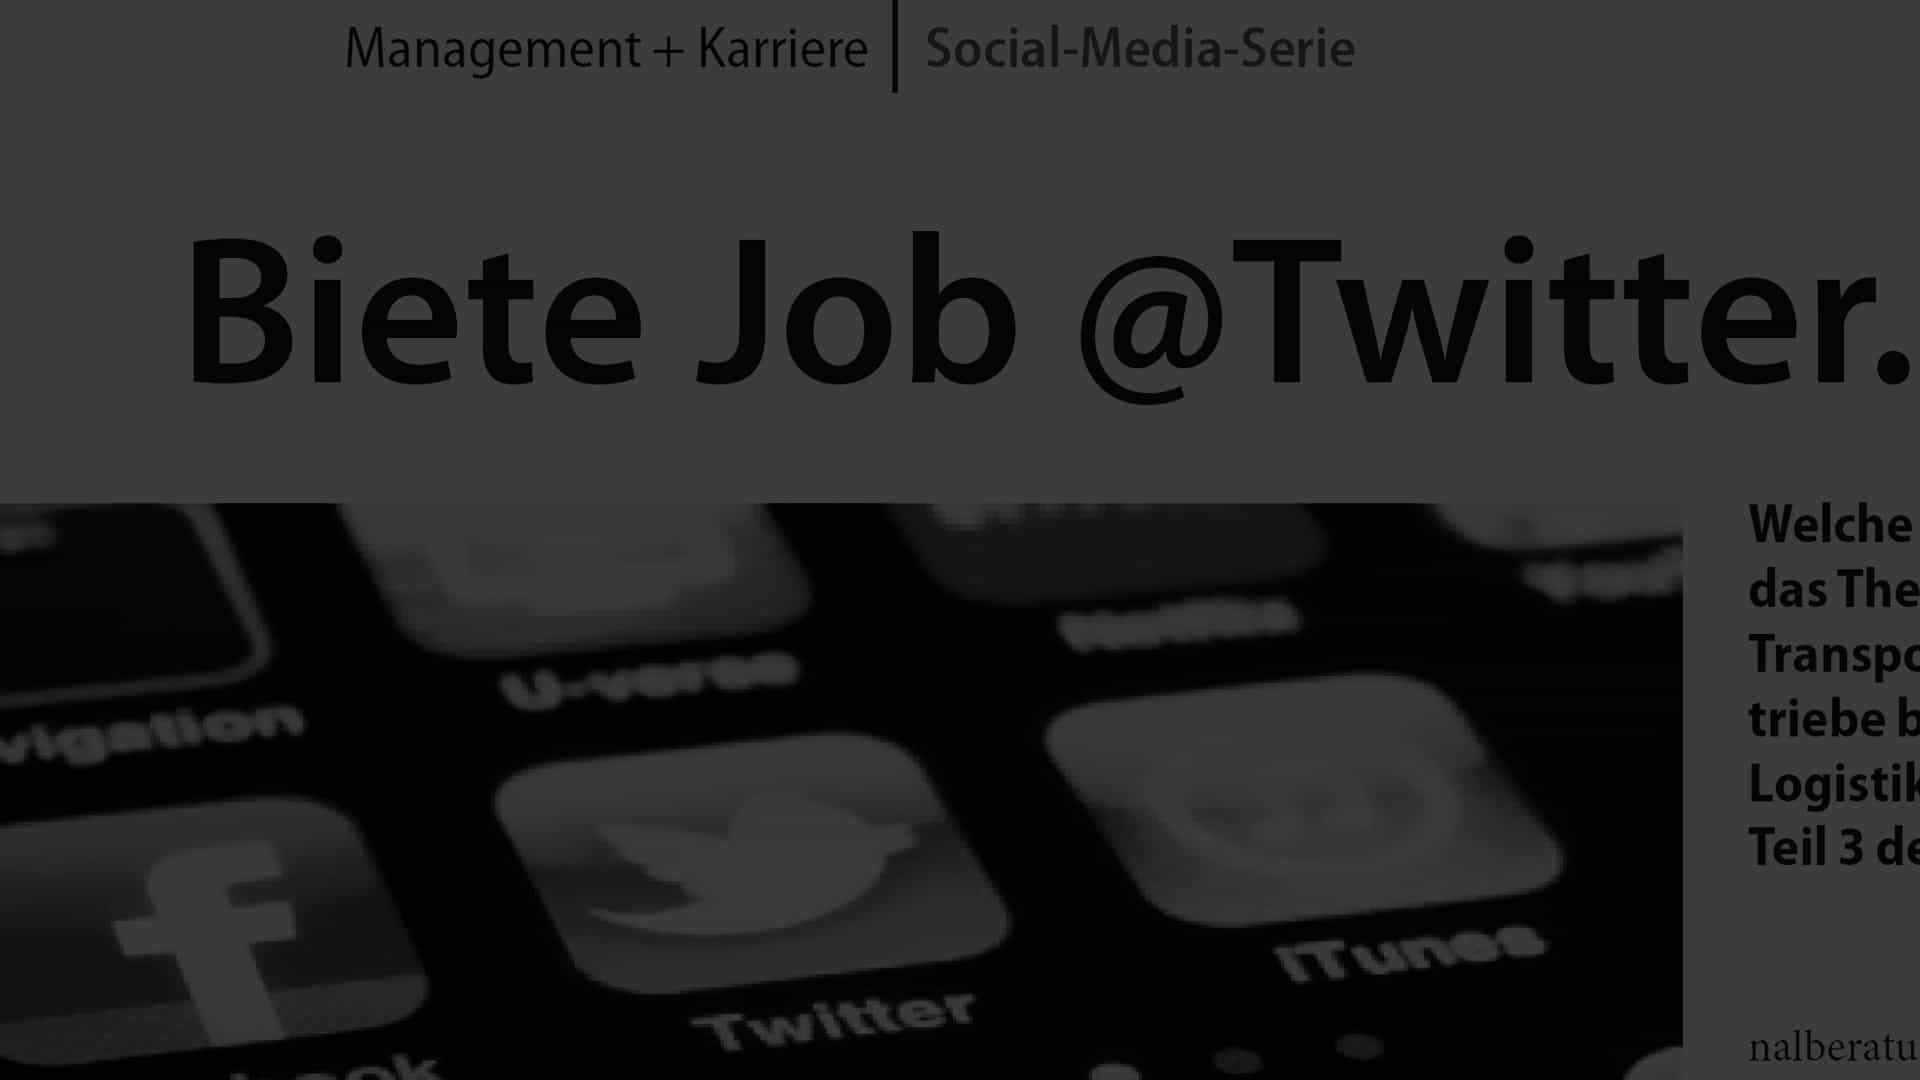 Artikel Biete Job at Twitter